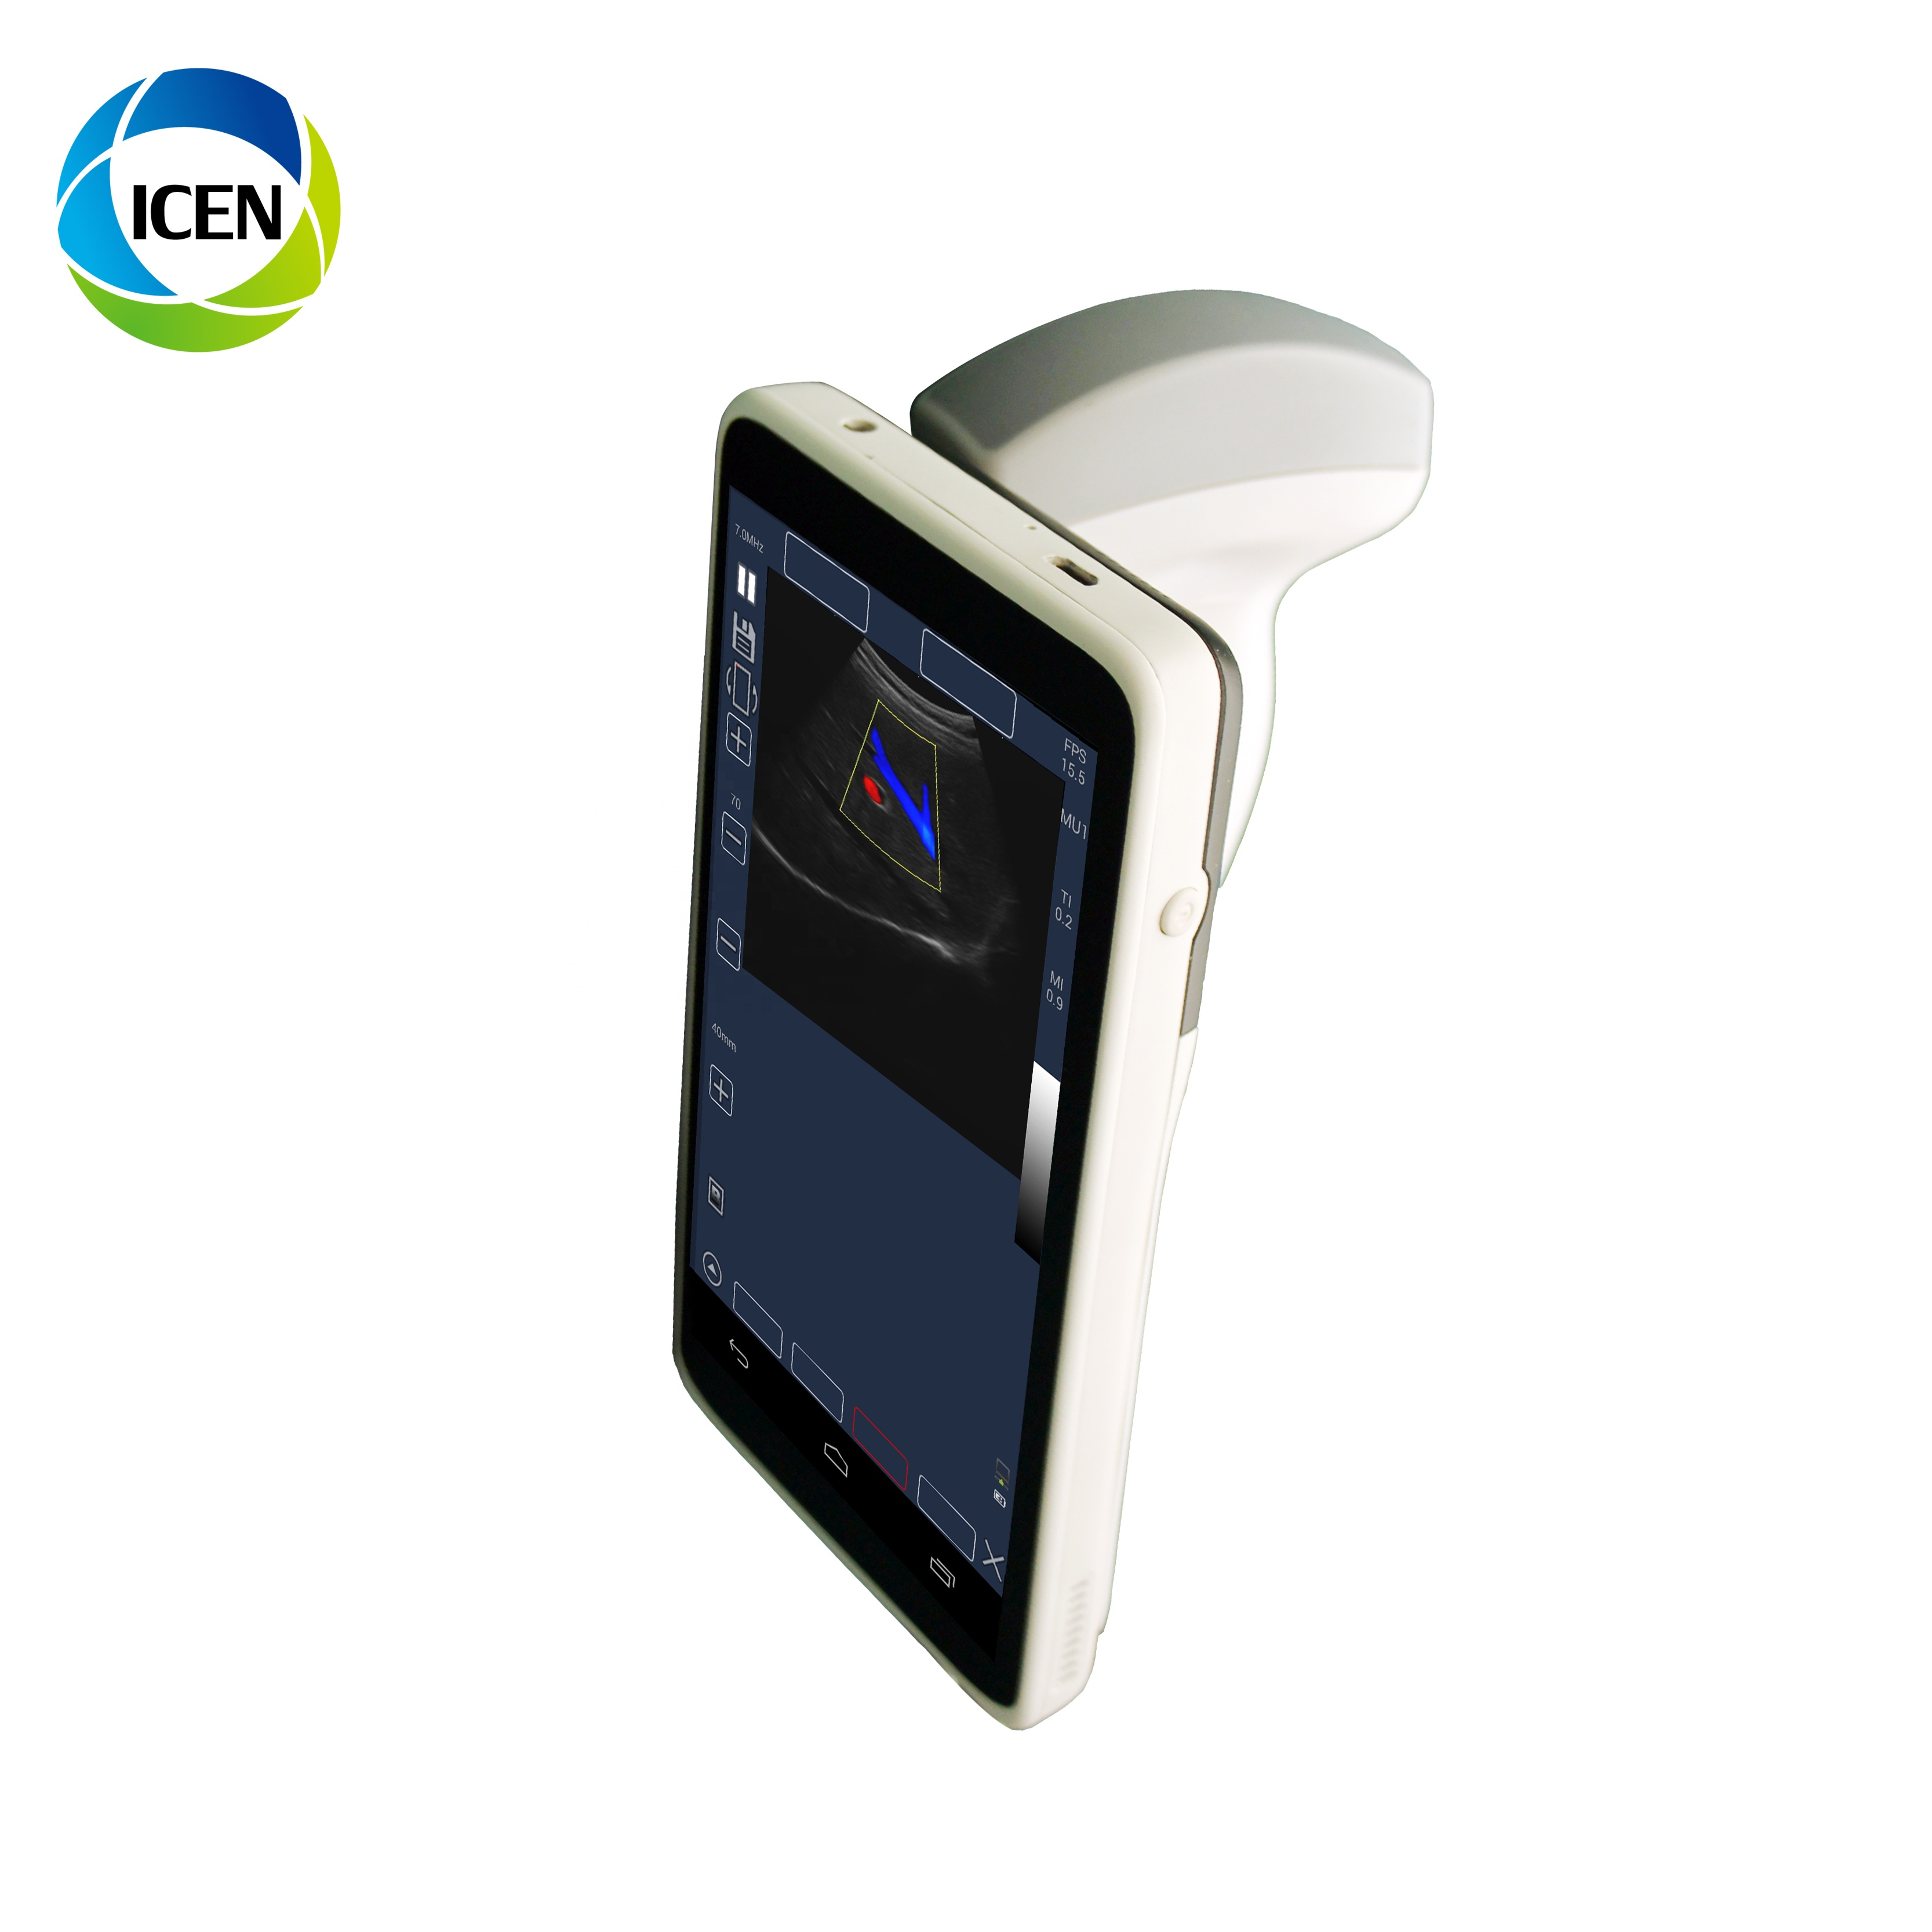 IN-AMU3 Cheapest Android System 128 Elements Probe Portable Ultrasound Scanner